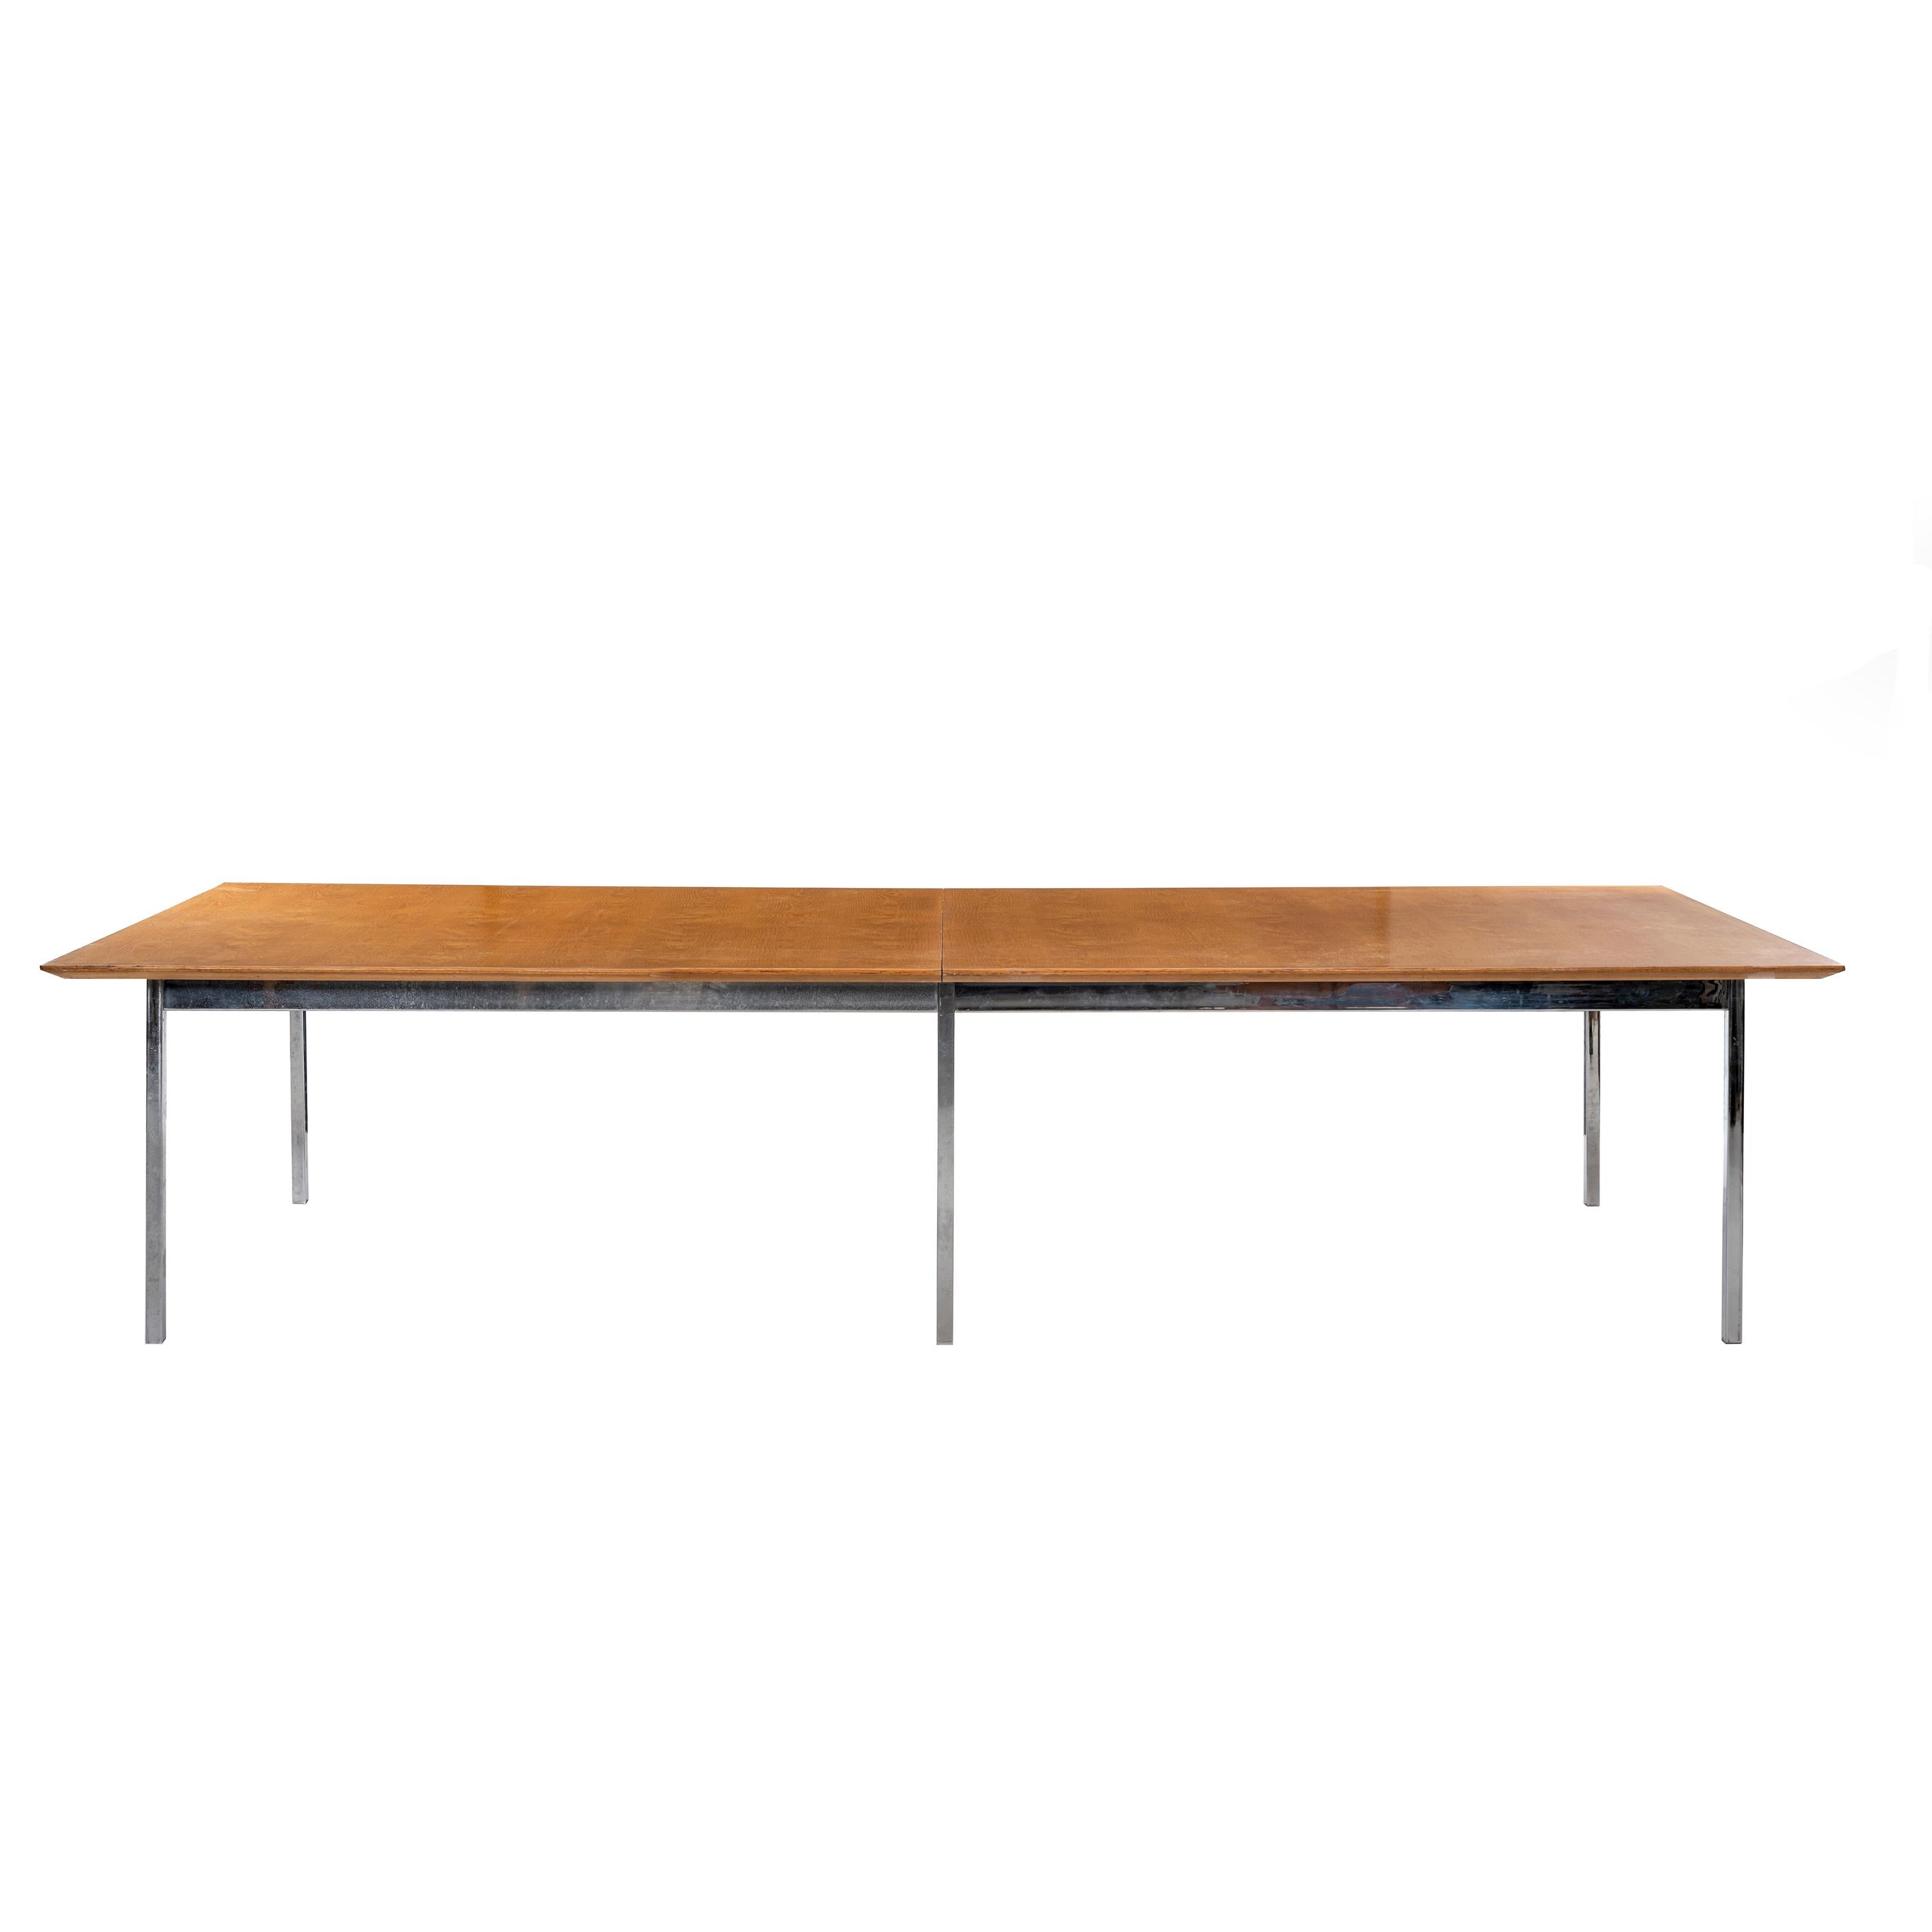 Florence Knoll Conference Table or Dining Table